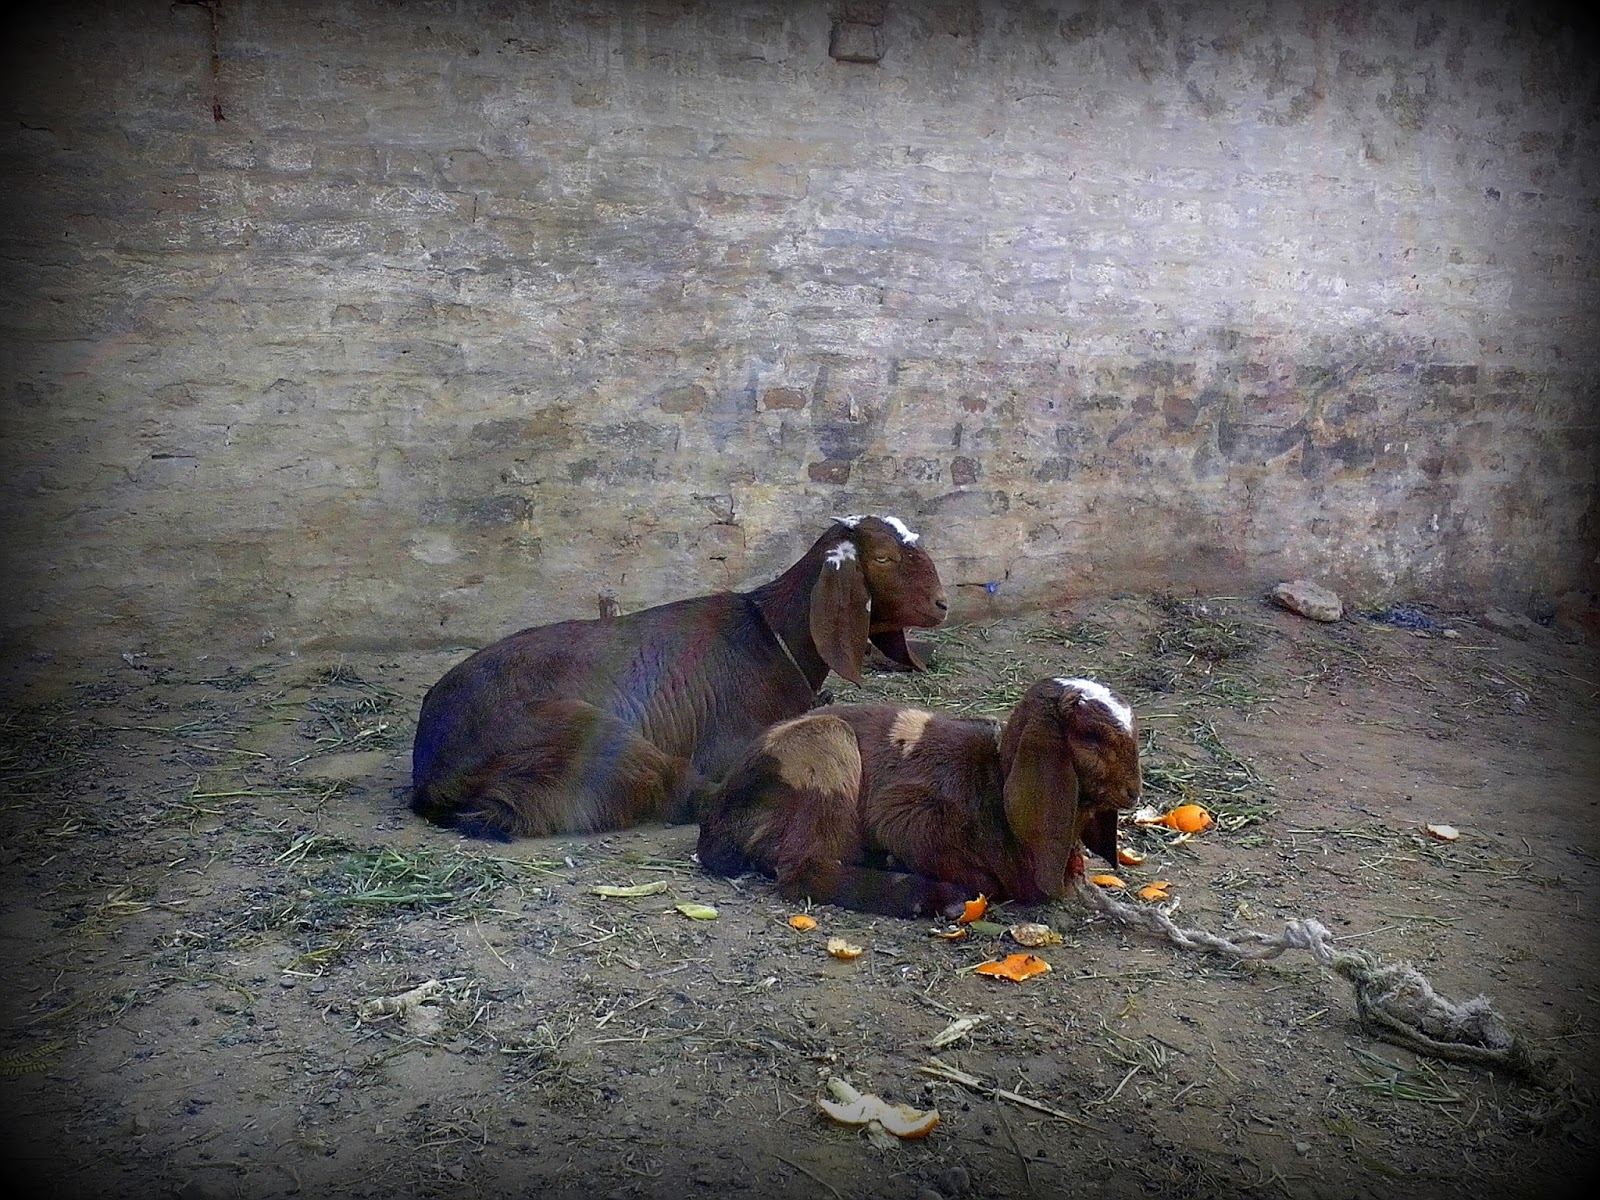 goat-and-son-pakistan